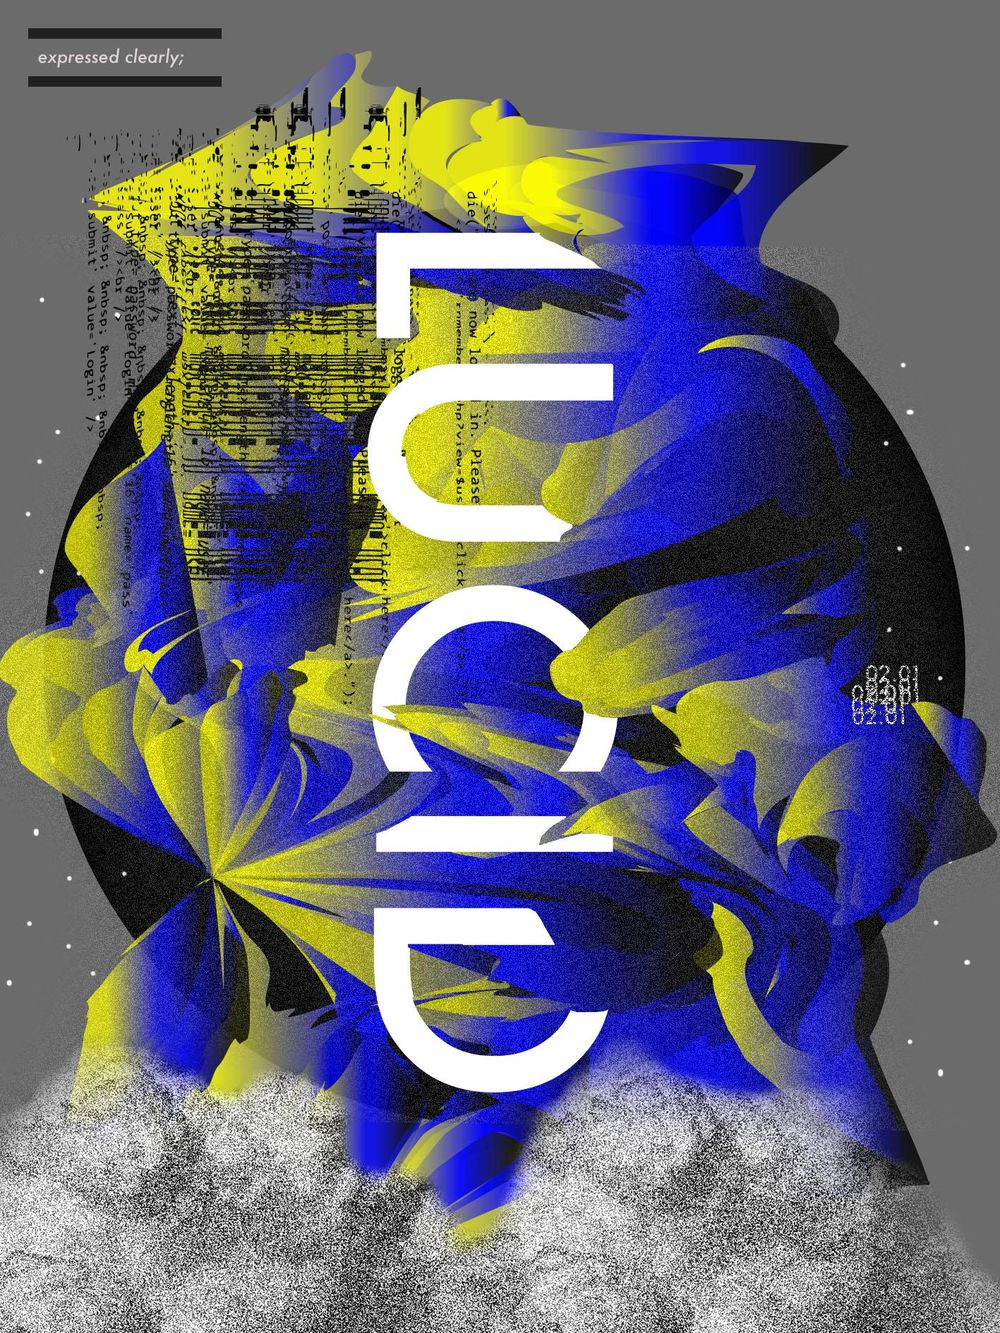 Lucid - image 1 - student project